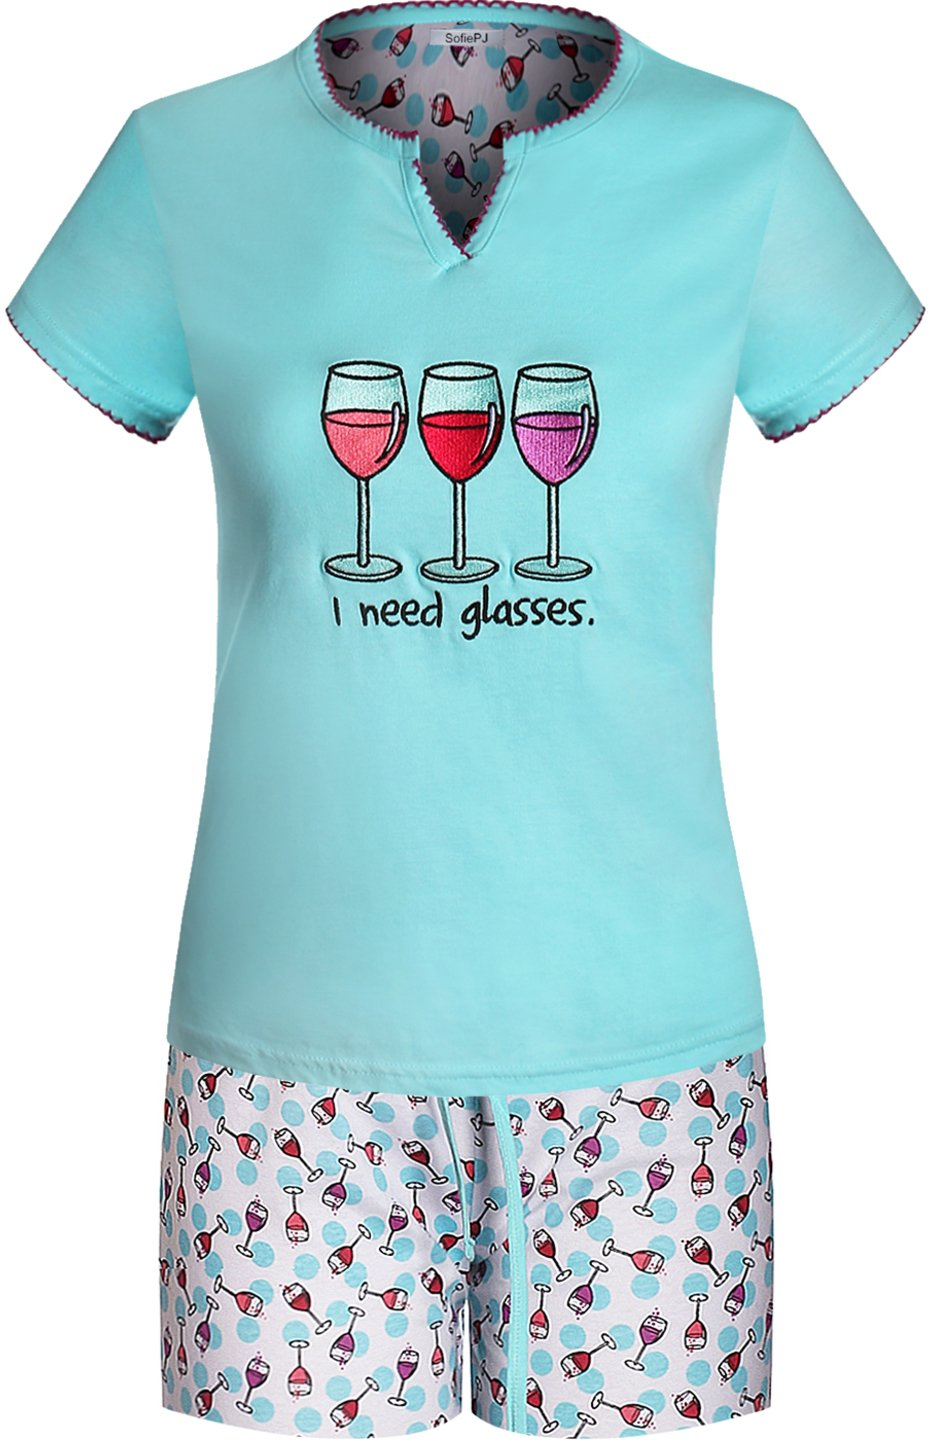 SofiePJ Women's Printed Cotton Short Sleeve Pajama Set with Short Pants Aqua M